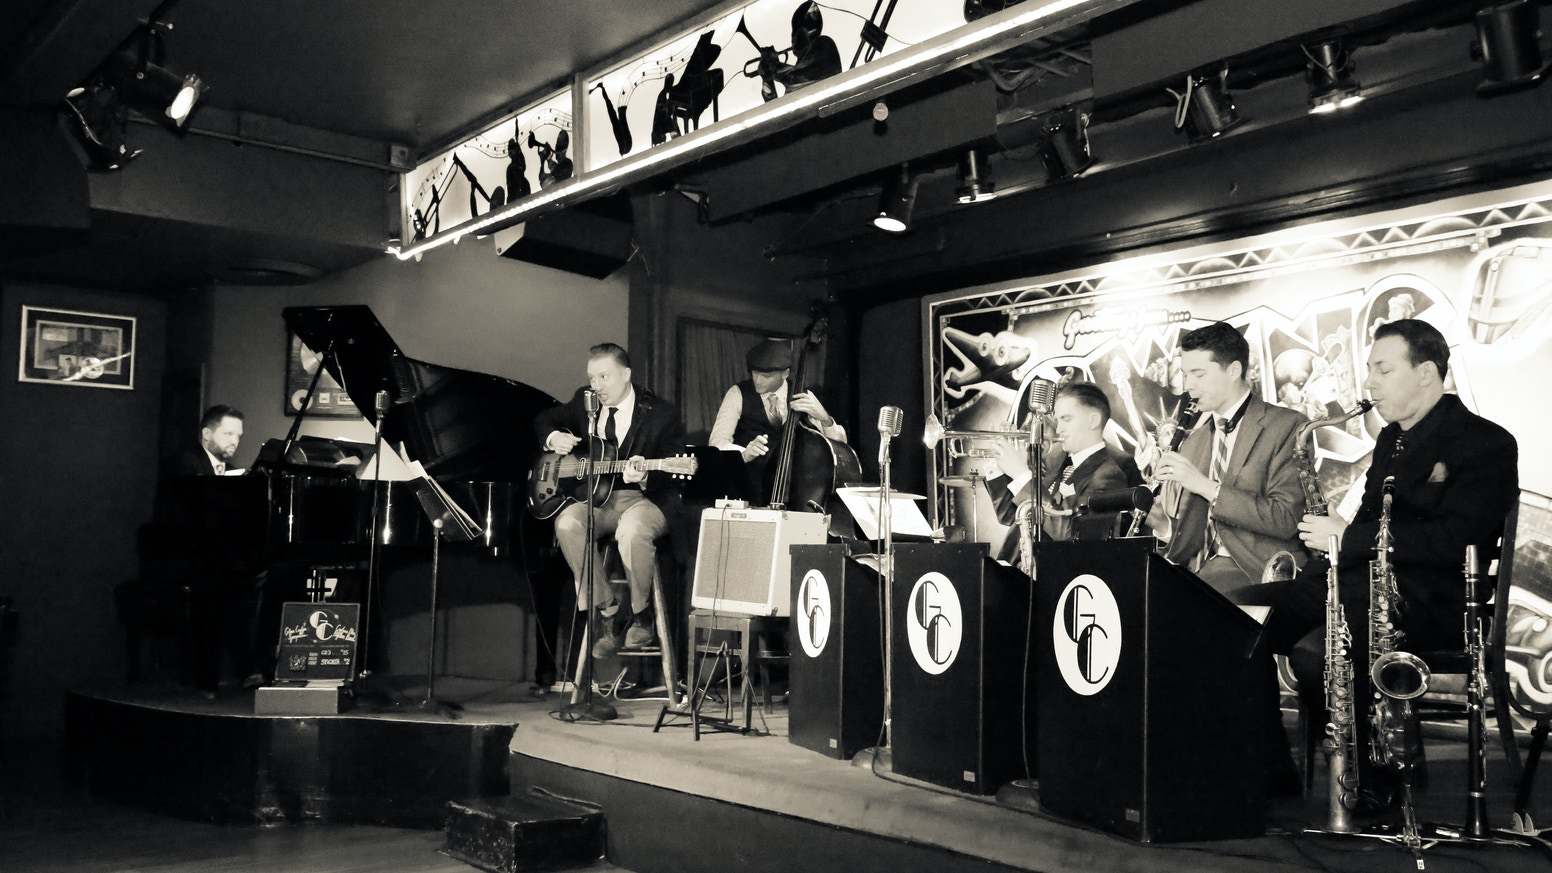 UPTOWN JUMP is Glenn Crytzer's new project: an album of ALL ORIGINAL swing music w/ his new NYC based swing band: the Savoy Seven!